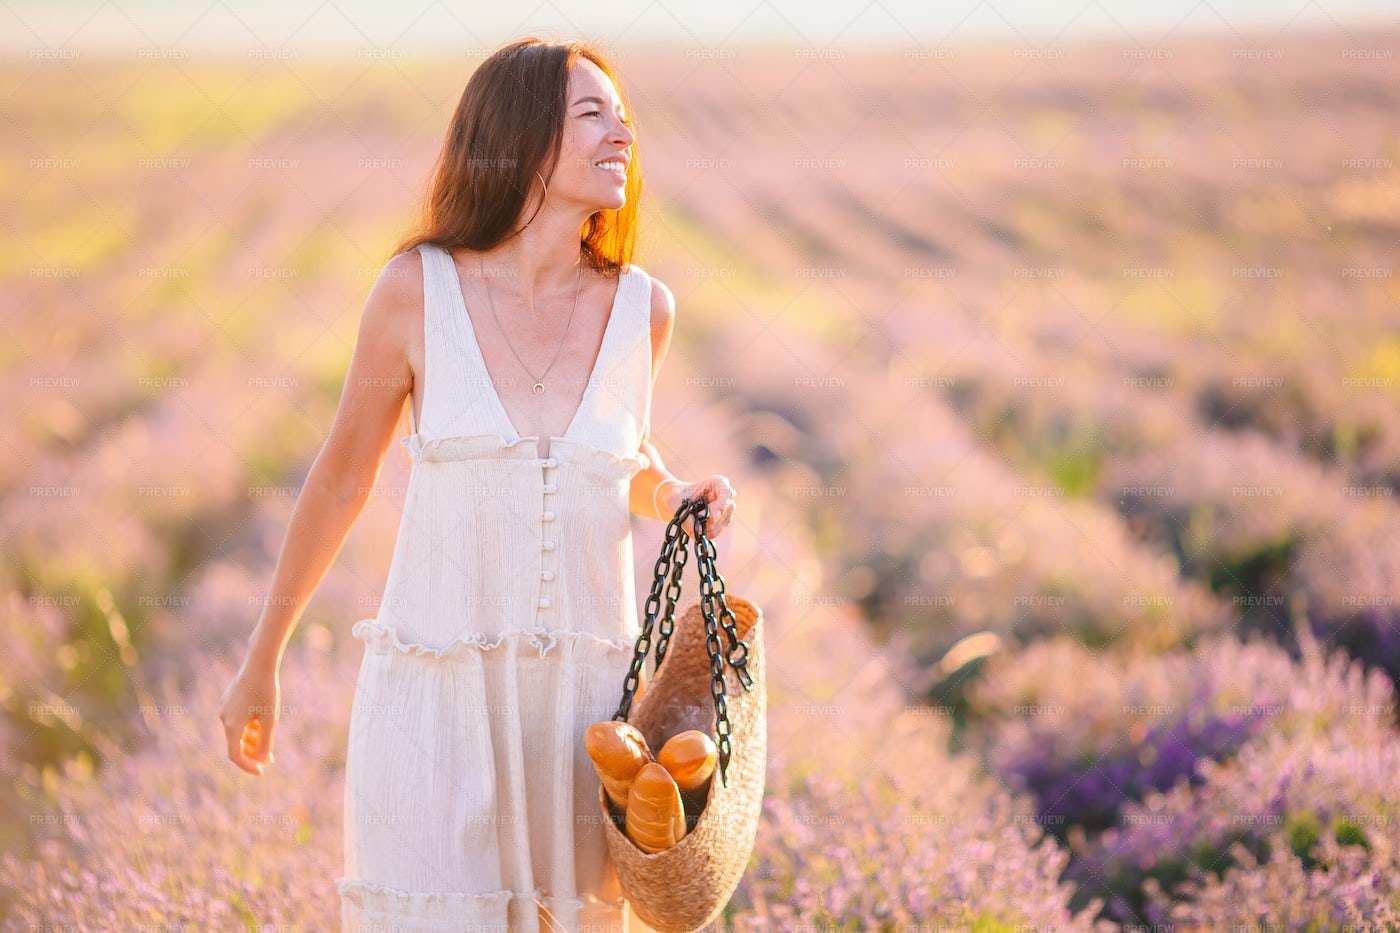 Woman In Field: Stock Photos